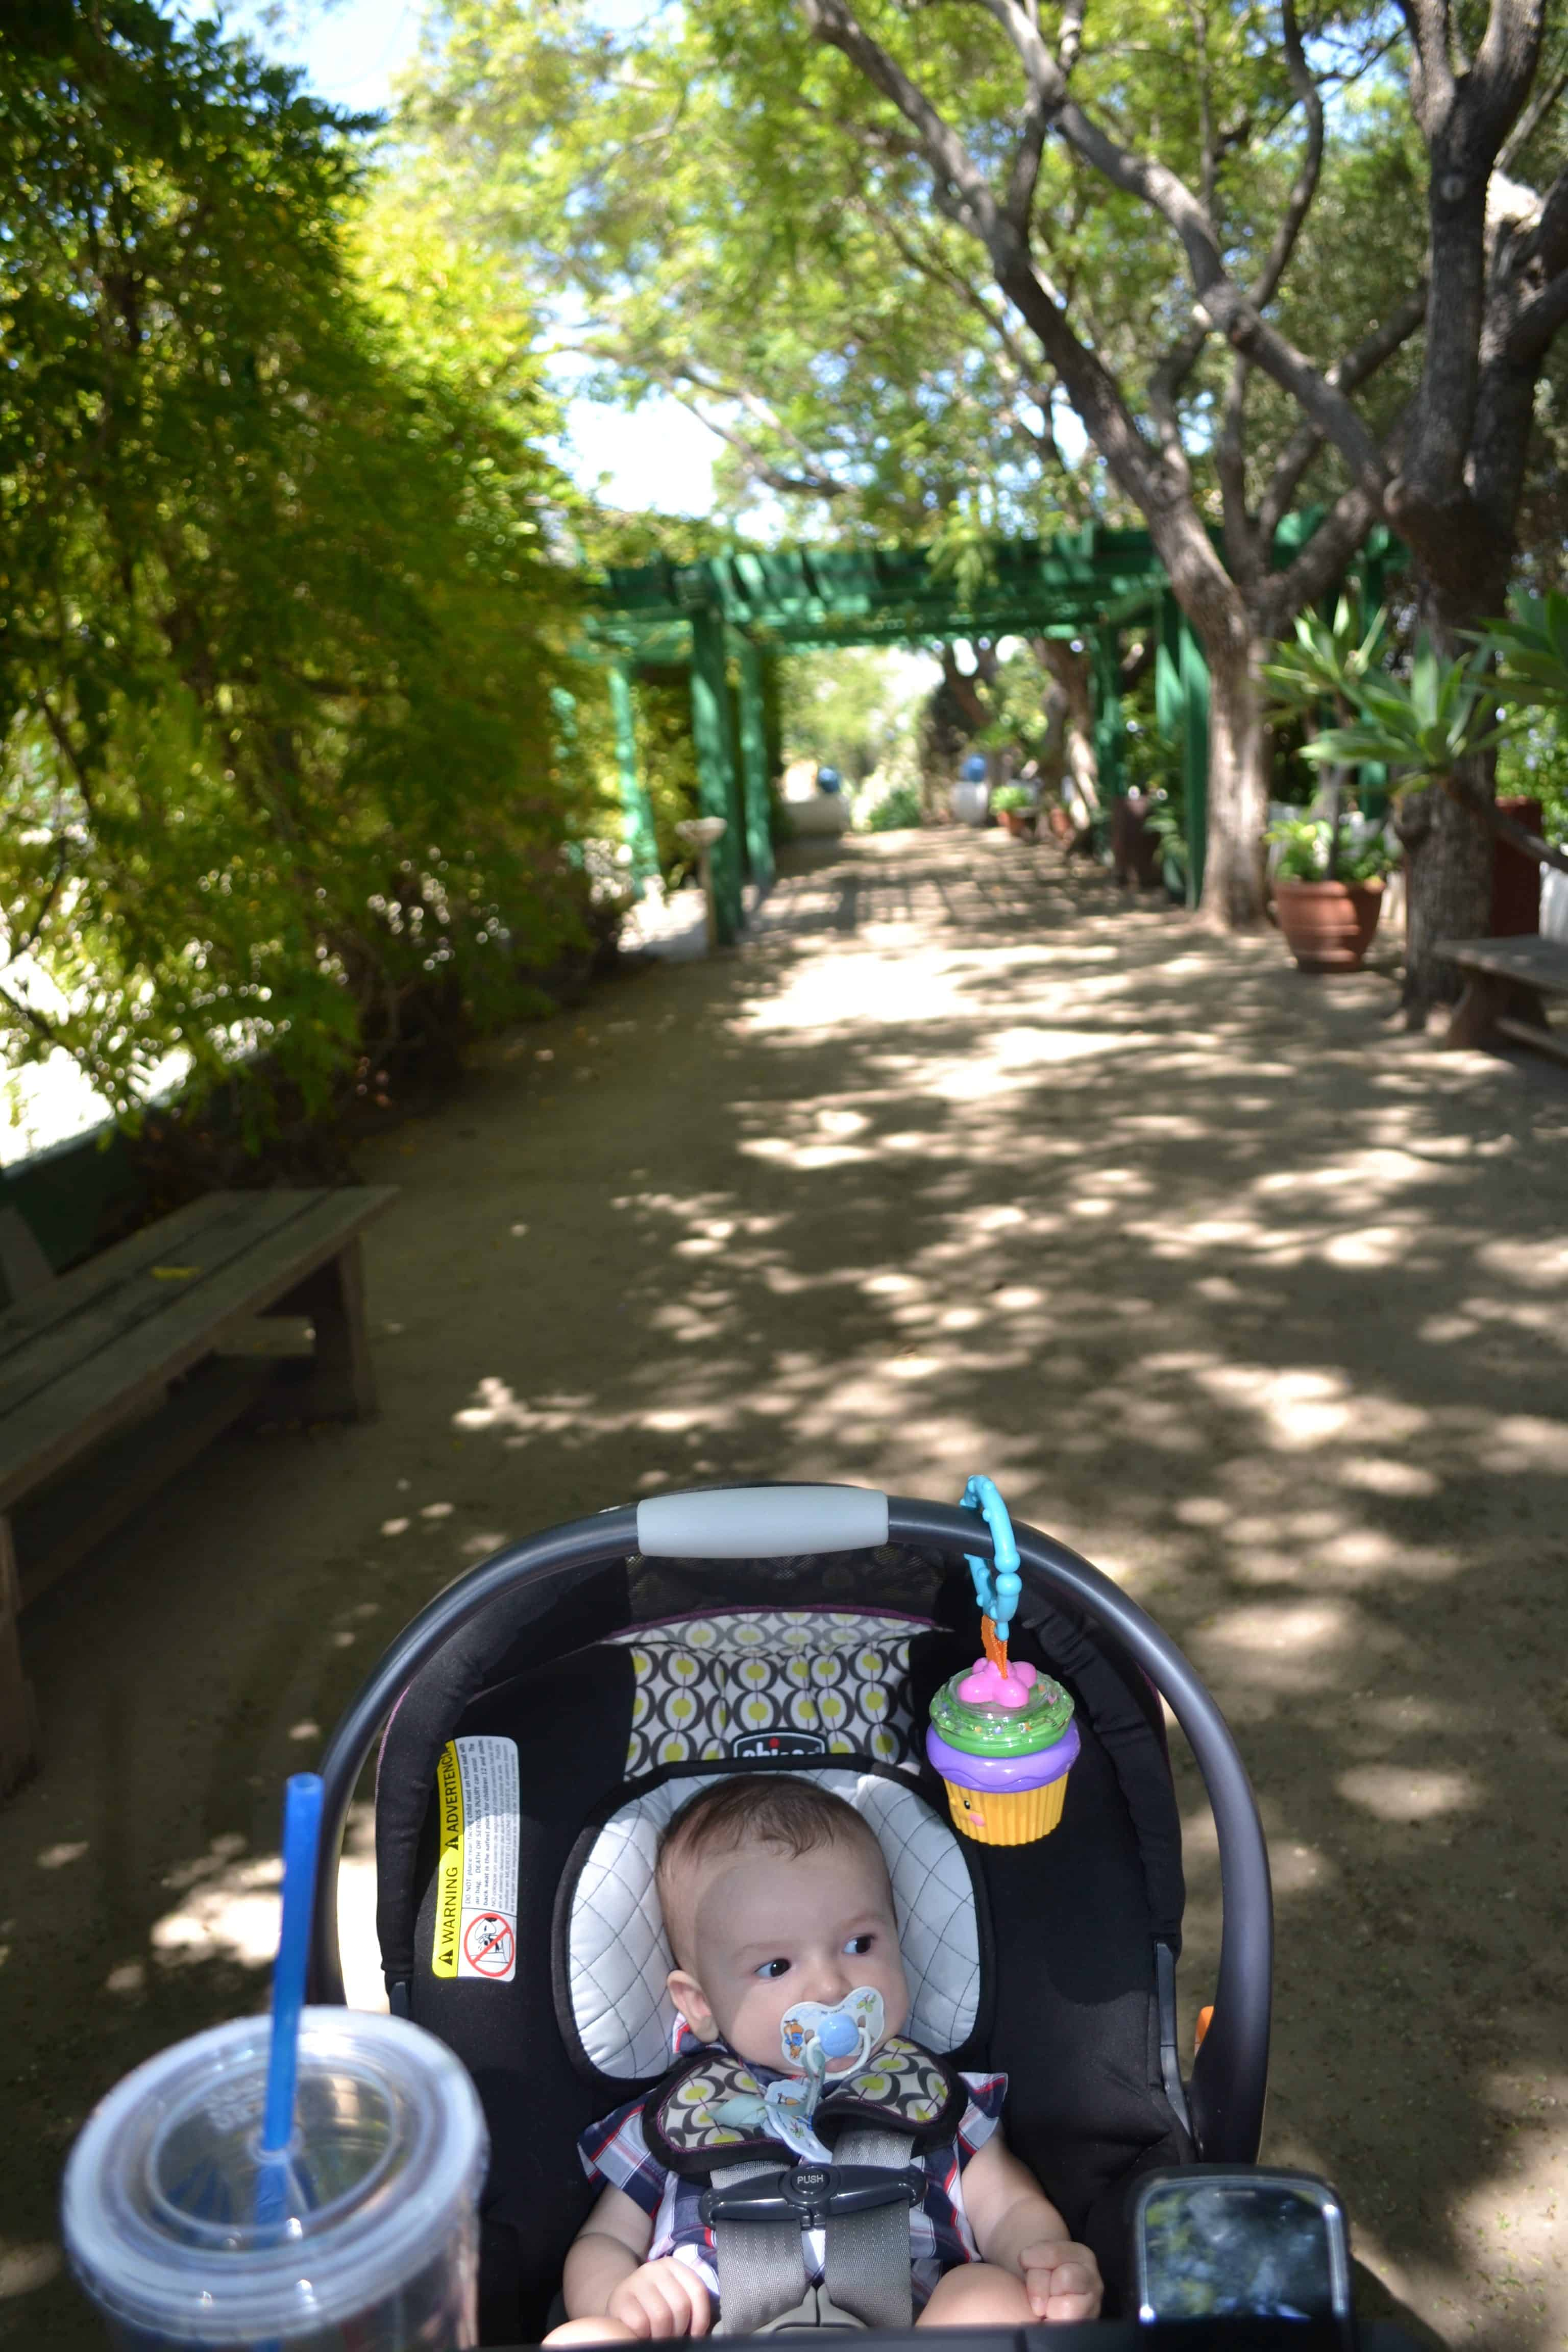 Baby walking in a forested area in a stroller.